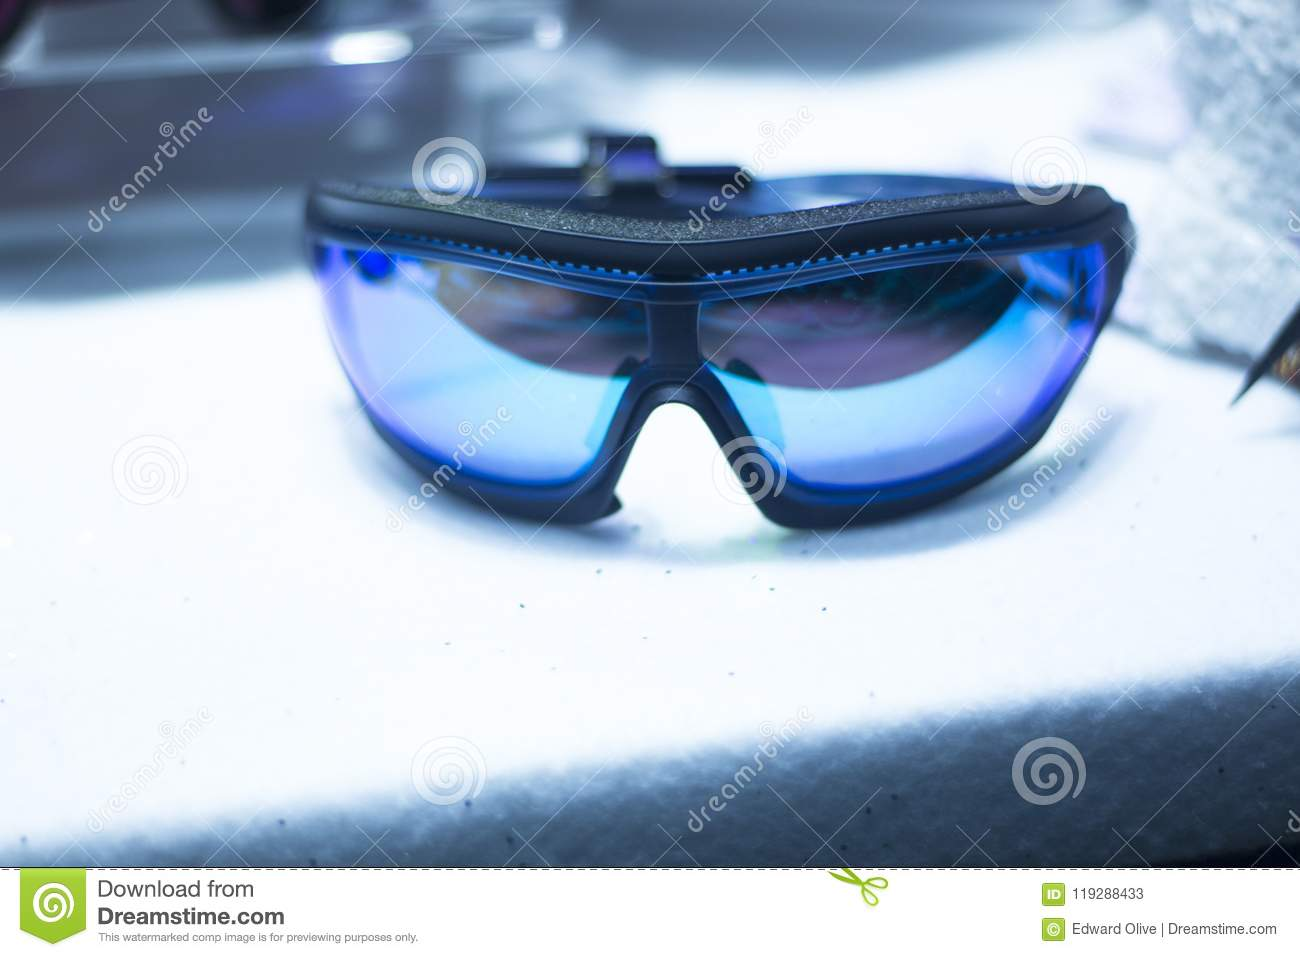 8ad6af9ed8 Modern high technology anti reflection ski and snowboard shop goggles on  sale in store window display.